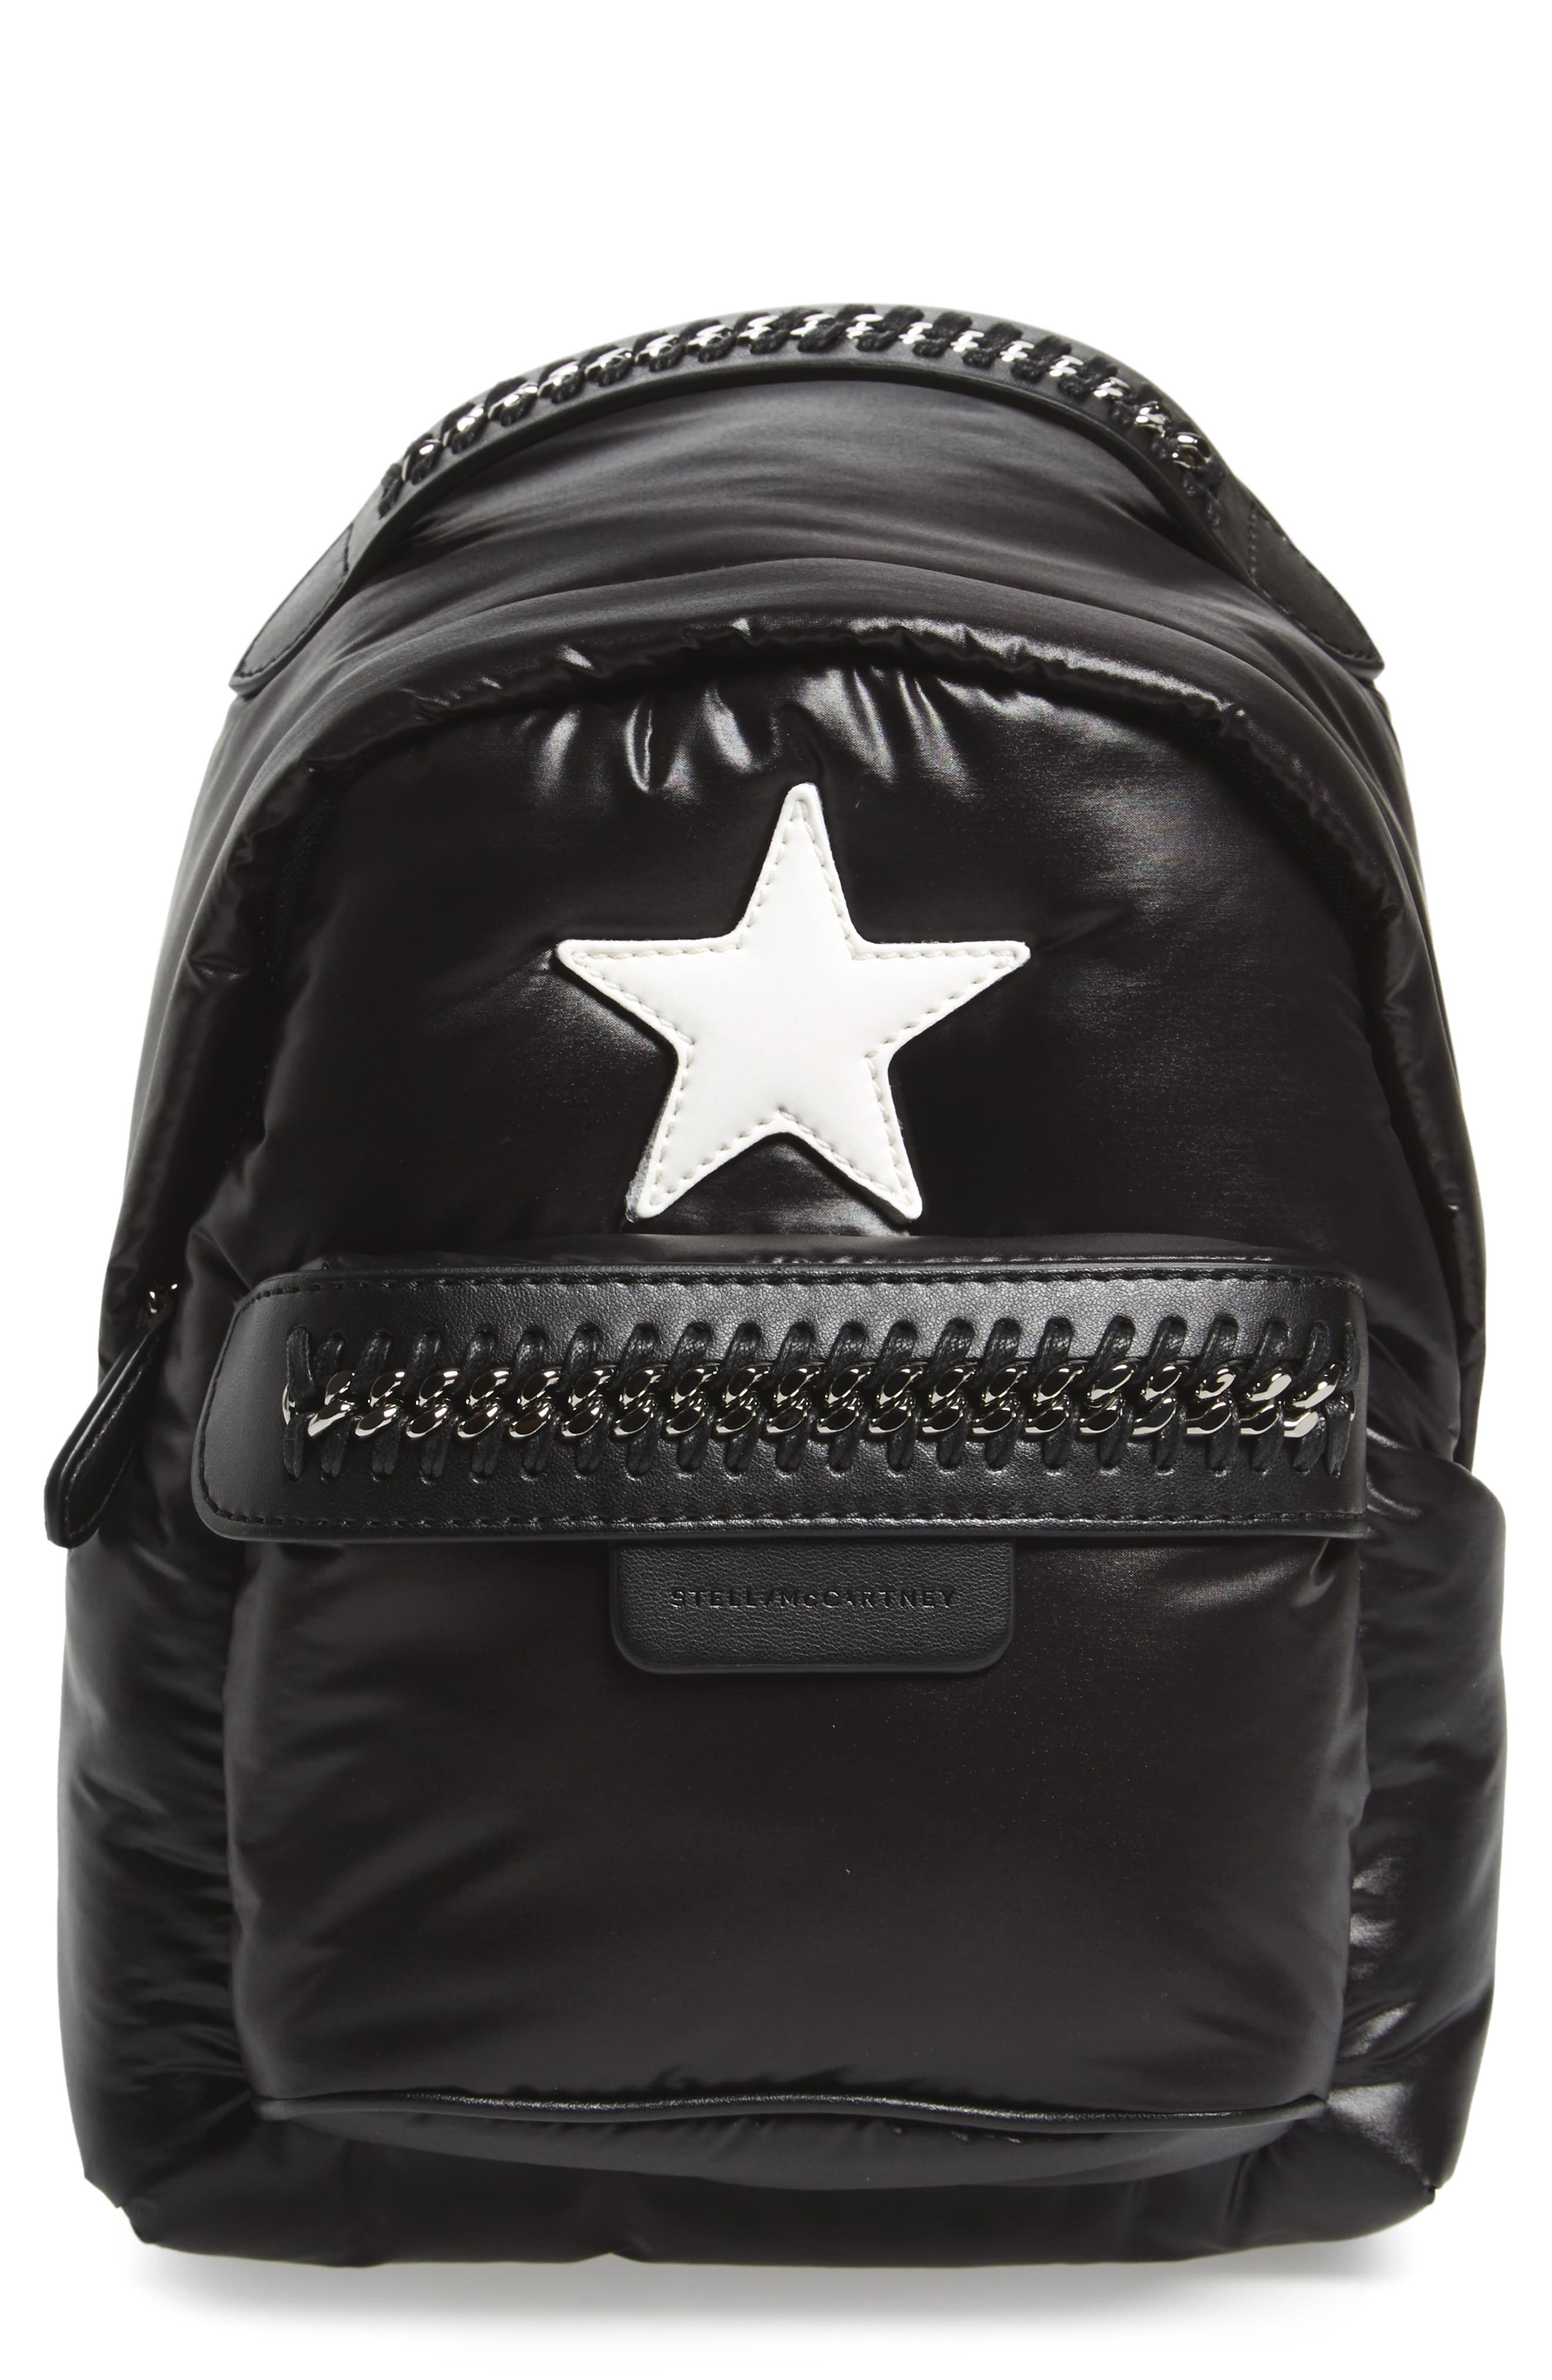 Main Image - Stella McCartney Mini Falabella Go Star Backpack